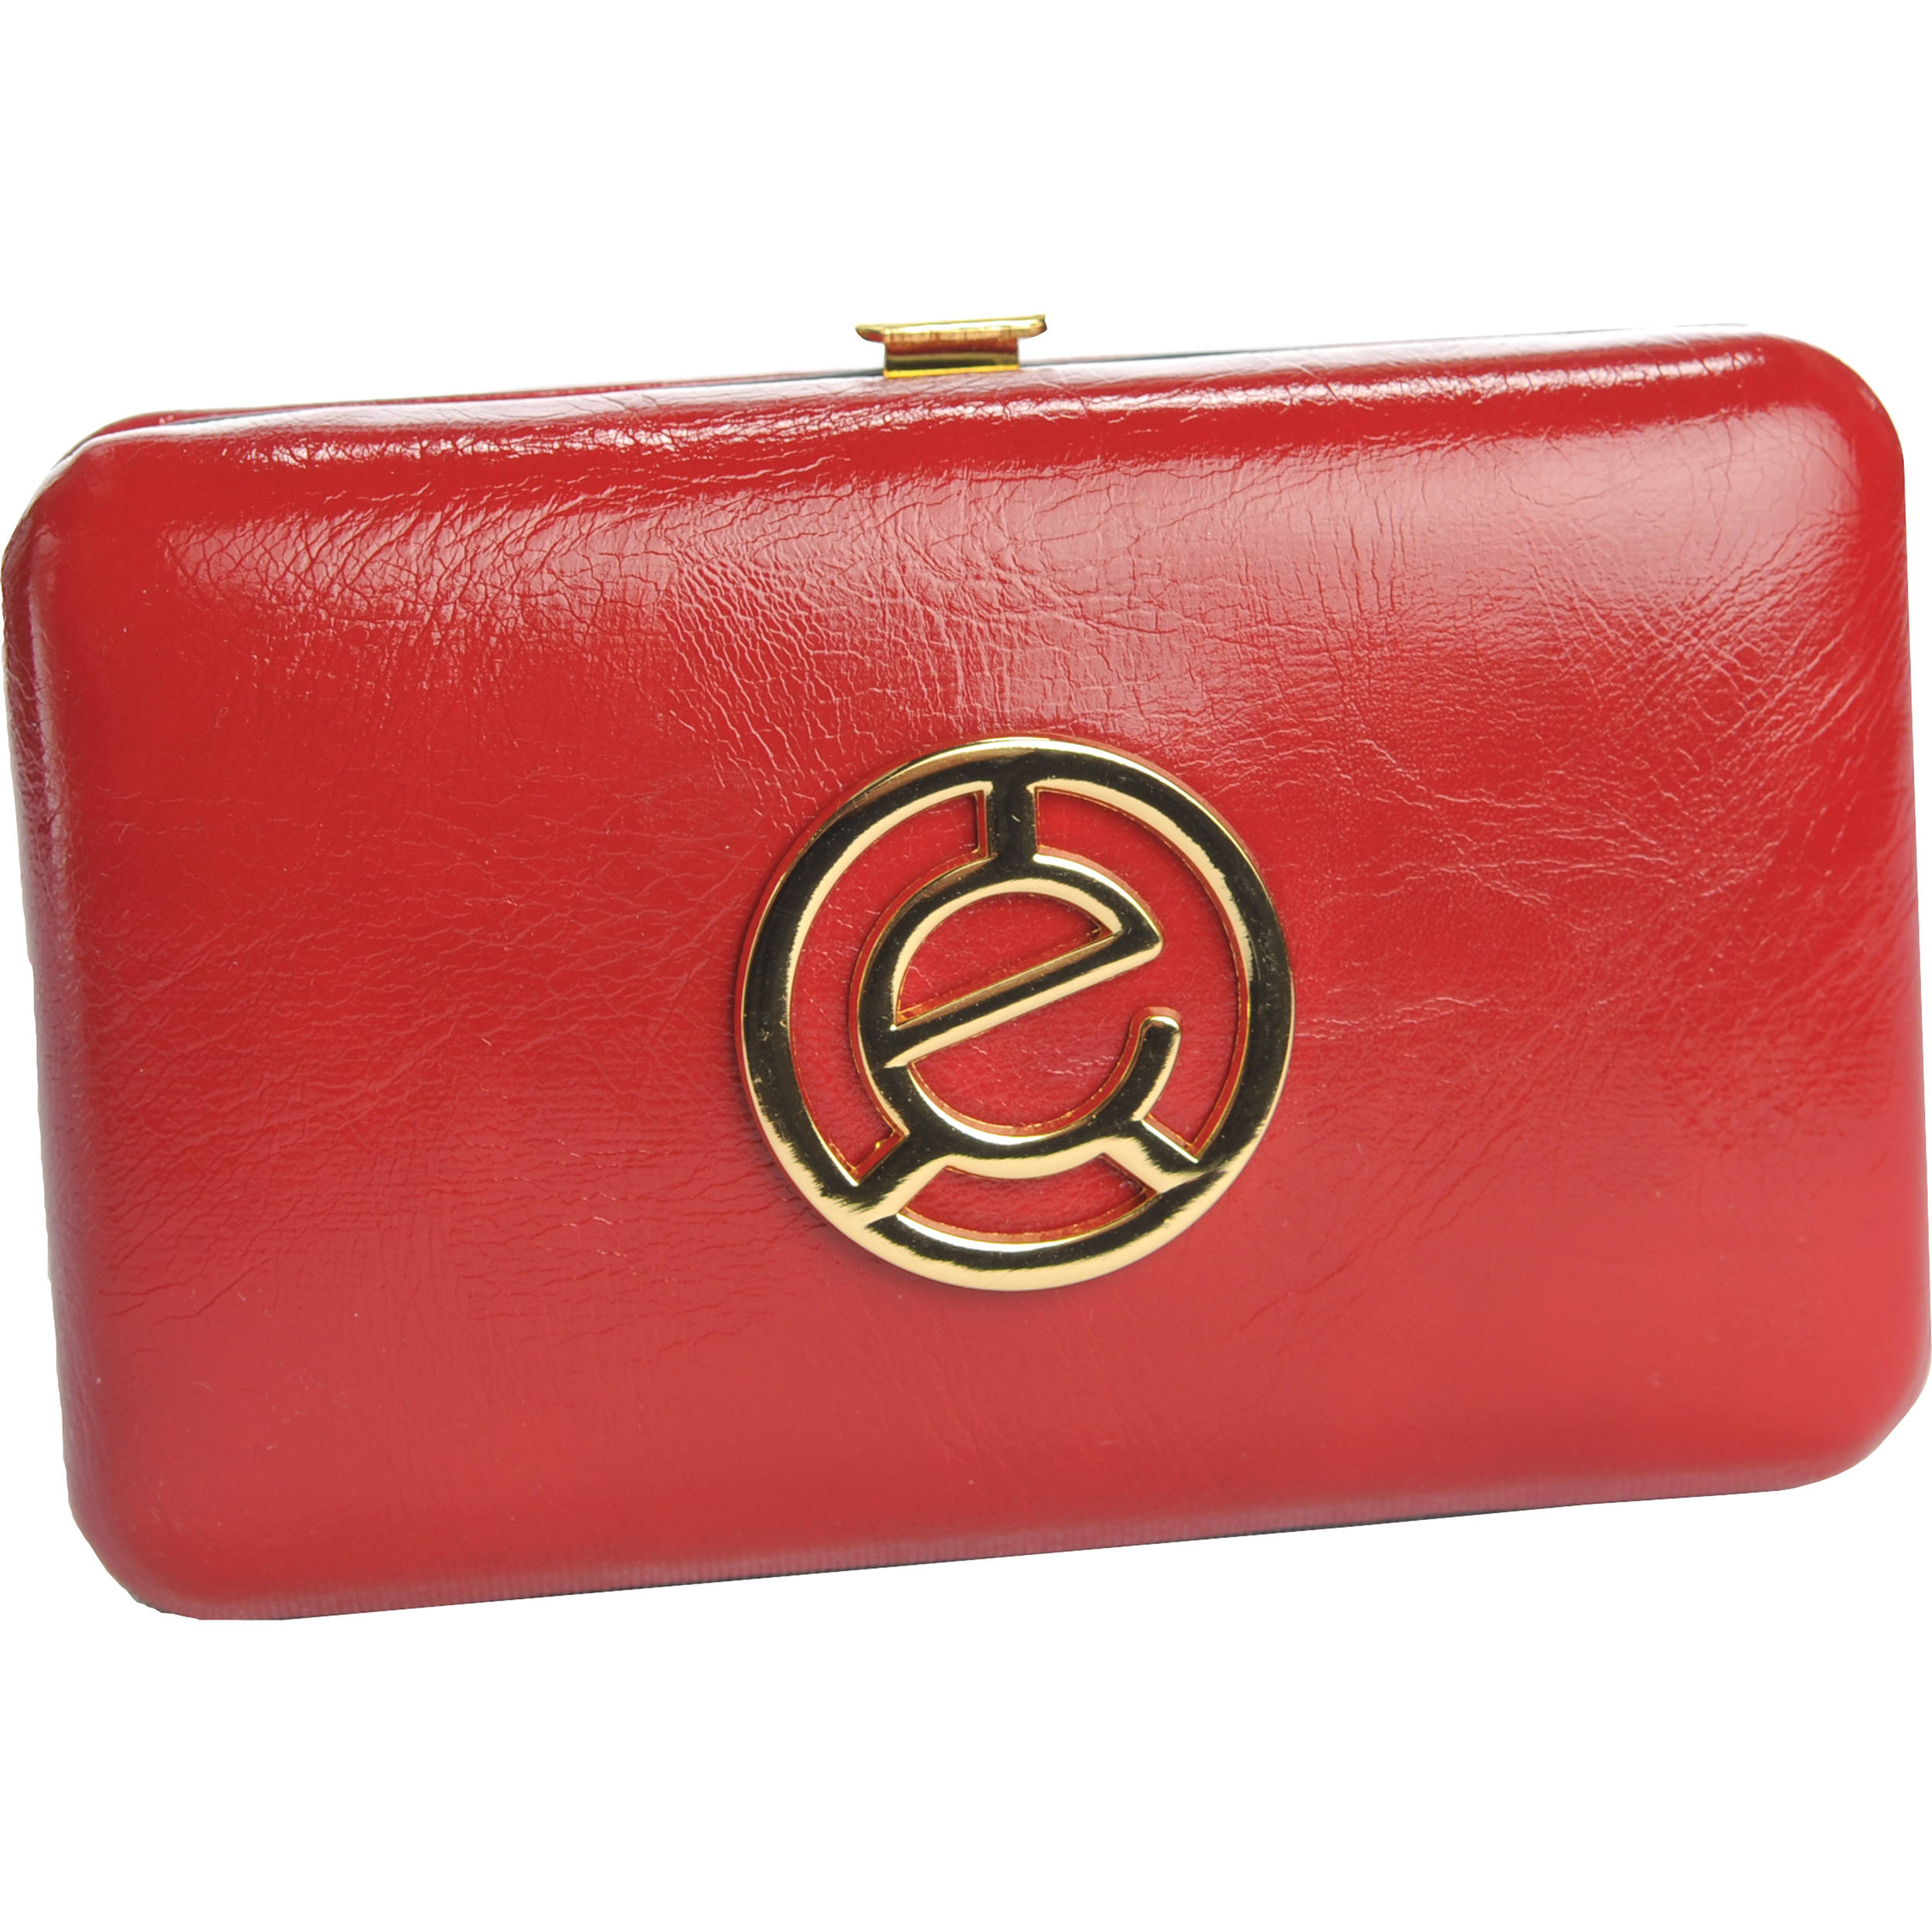 Jill E Designs Clutch Case Red